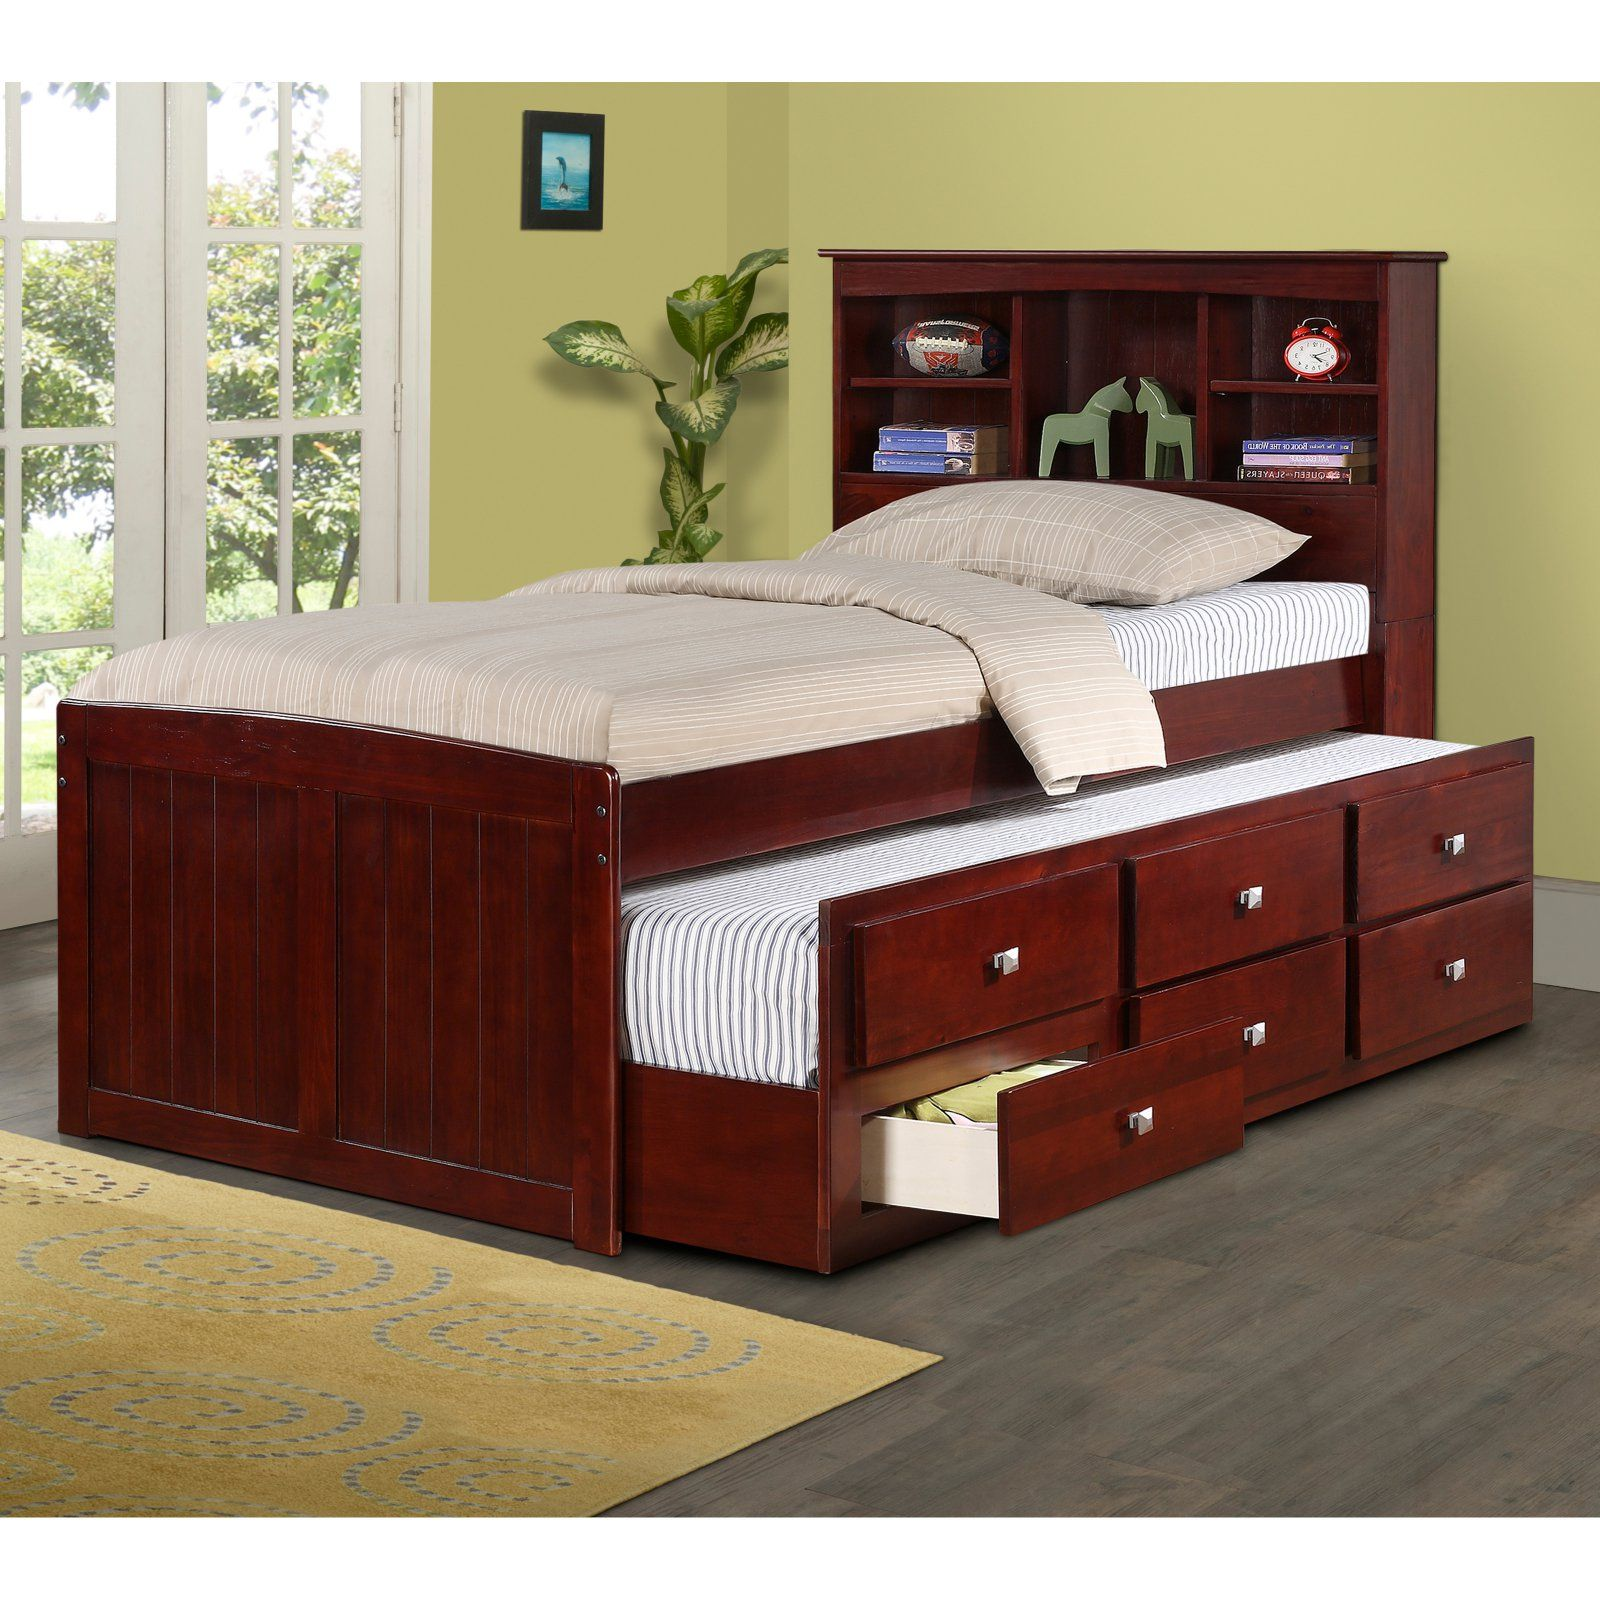 Storage Bed For 3 Year Old Captains Bed Twin Storage Bed Bed Plans